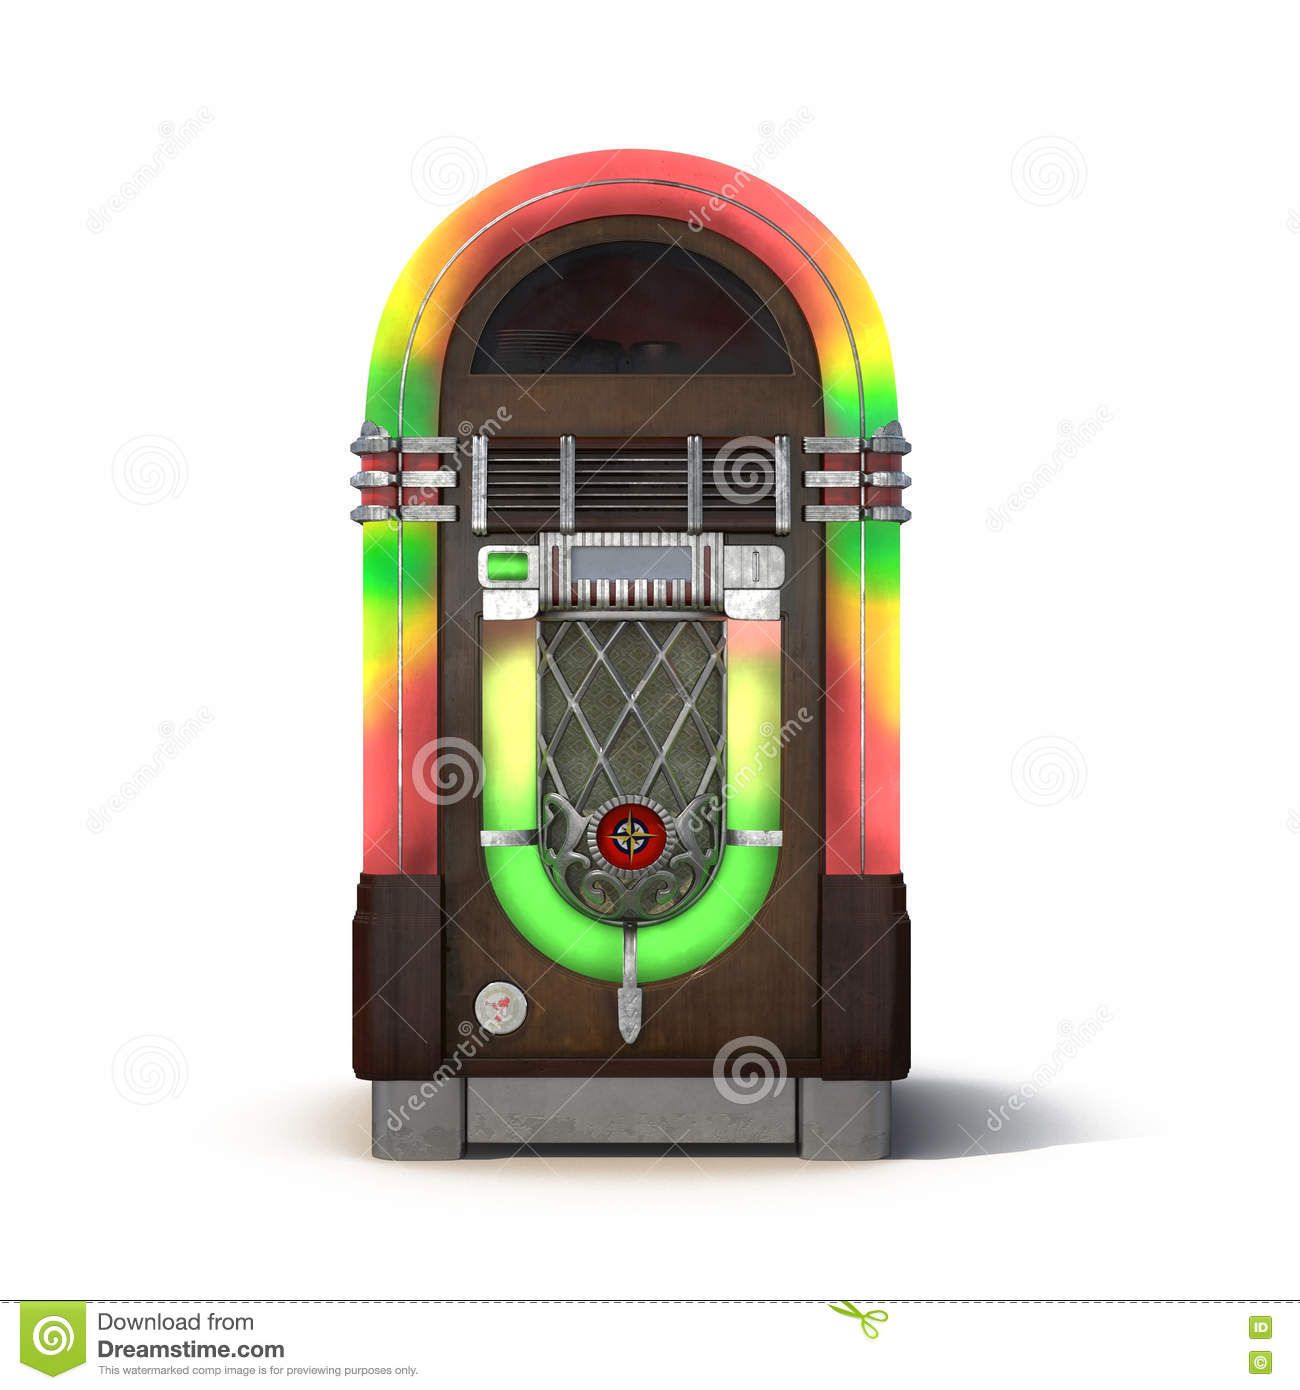 Old Jukebox Music Player On White 3D Illustration Stock